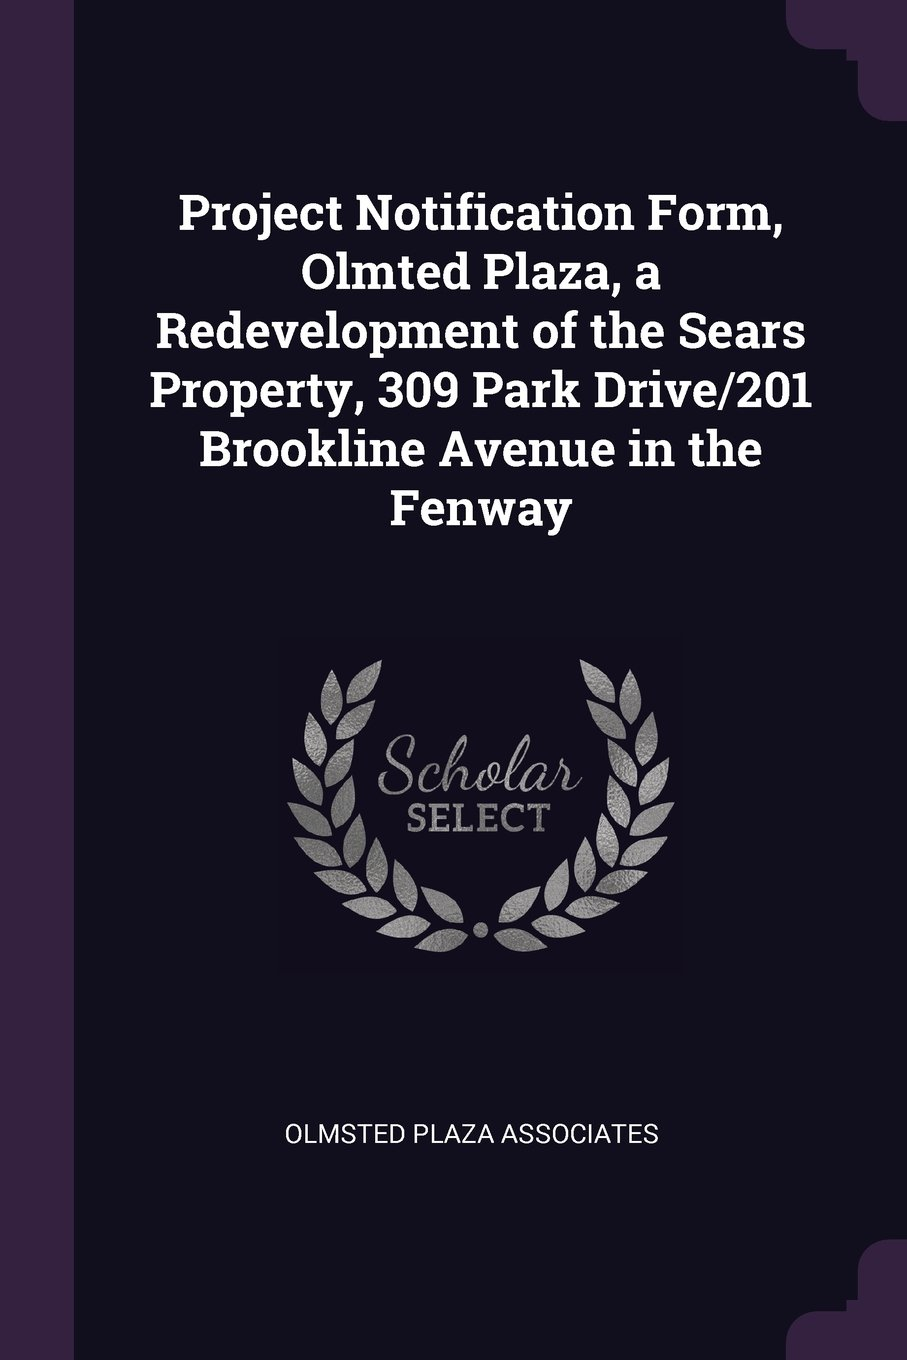 PDF] Project Notification Form, Olmted Plaza, A Redevelopment Of The